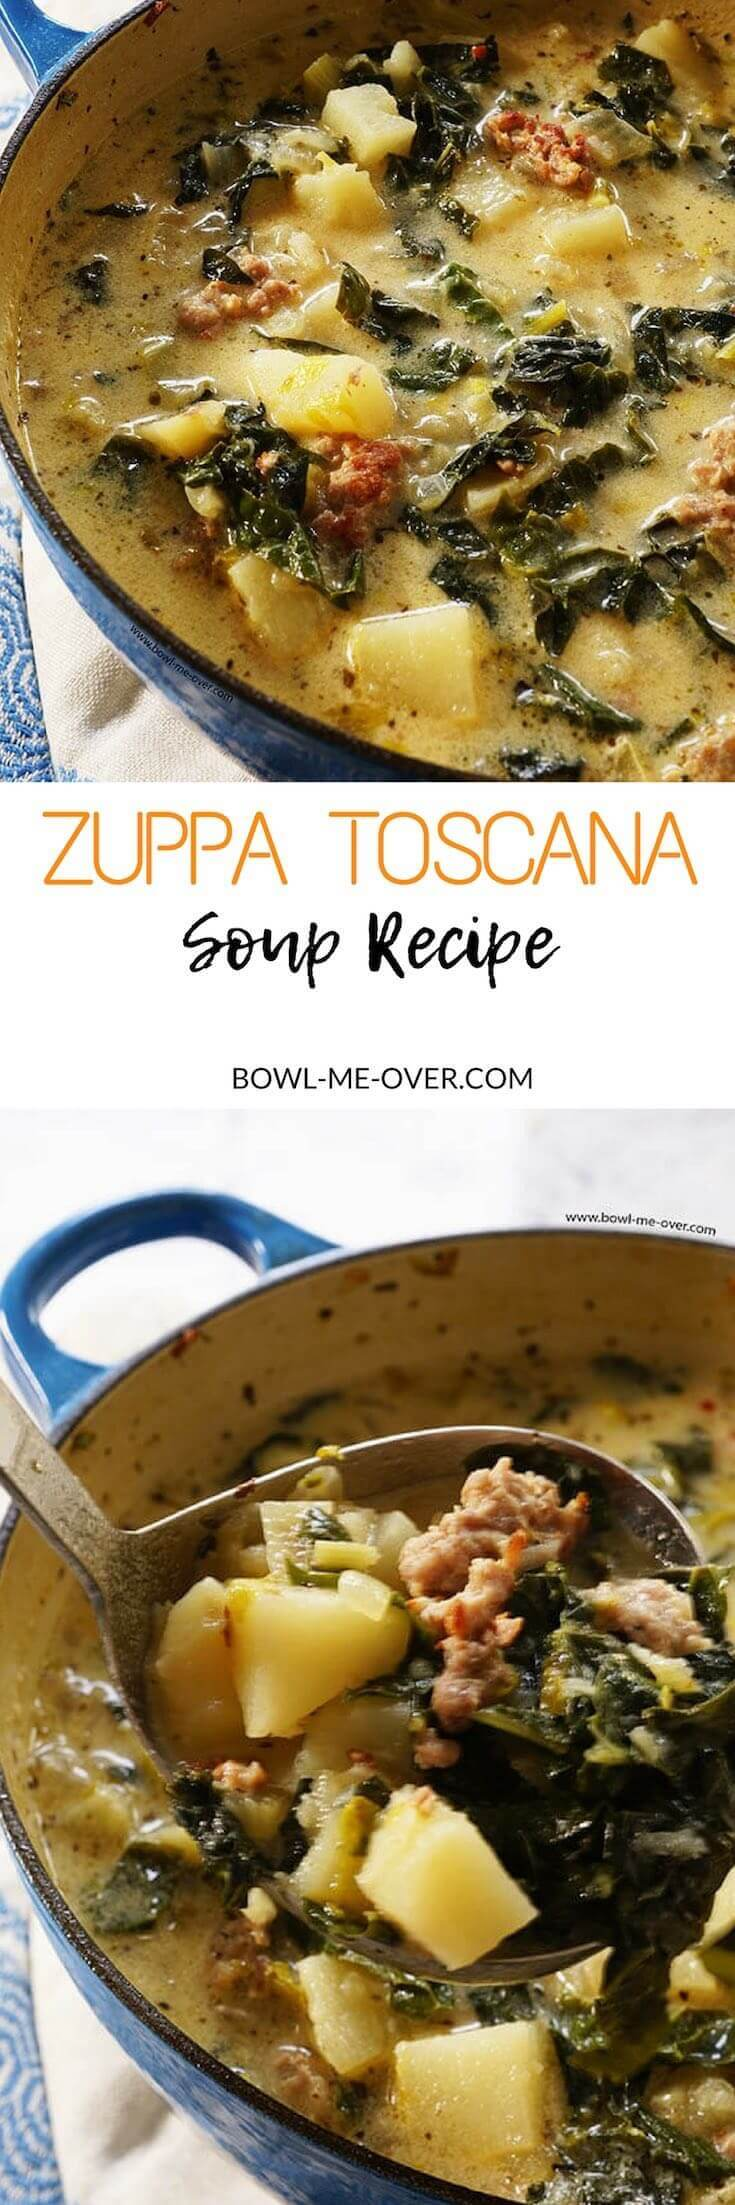 You don't have to go out to your favorite Italian Restaurant to enjoy restaurant style soup at home! Zuppa Toscana Soup is a quick and easy soup - delicious! #ZuppaToscanaSoup #BowlMeOver